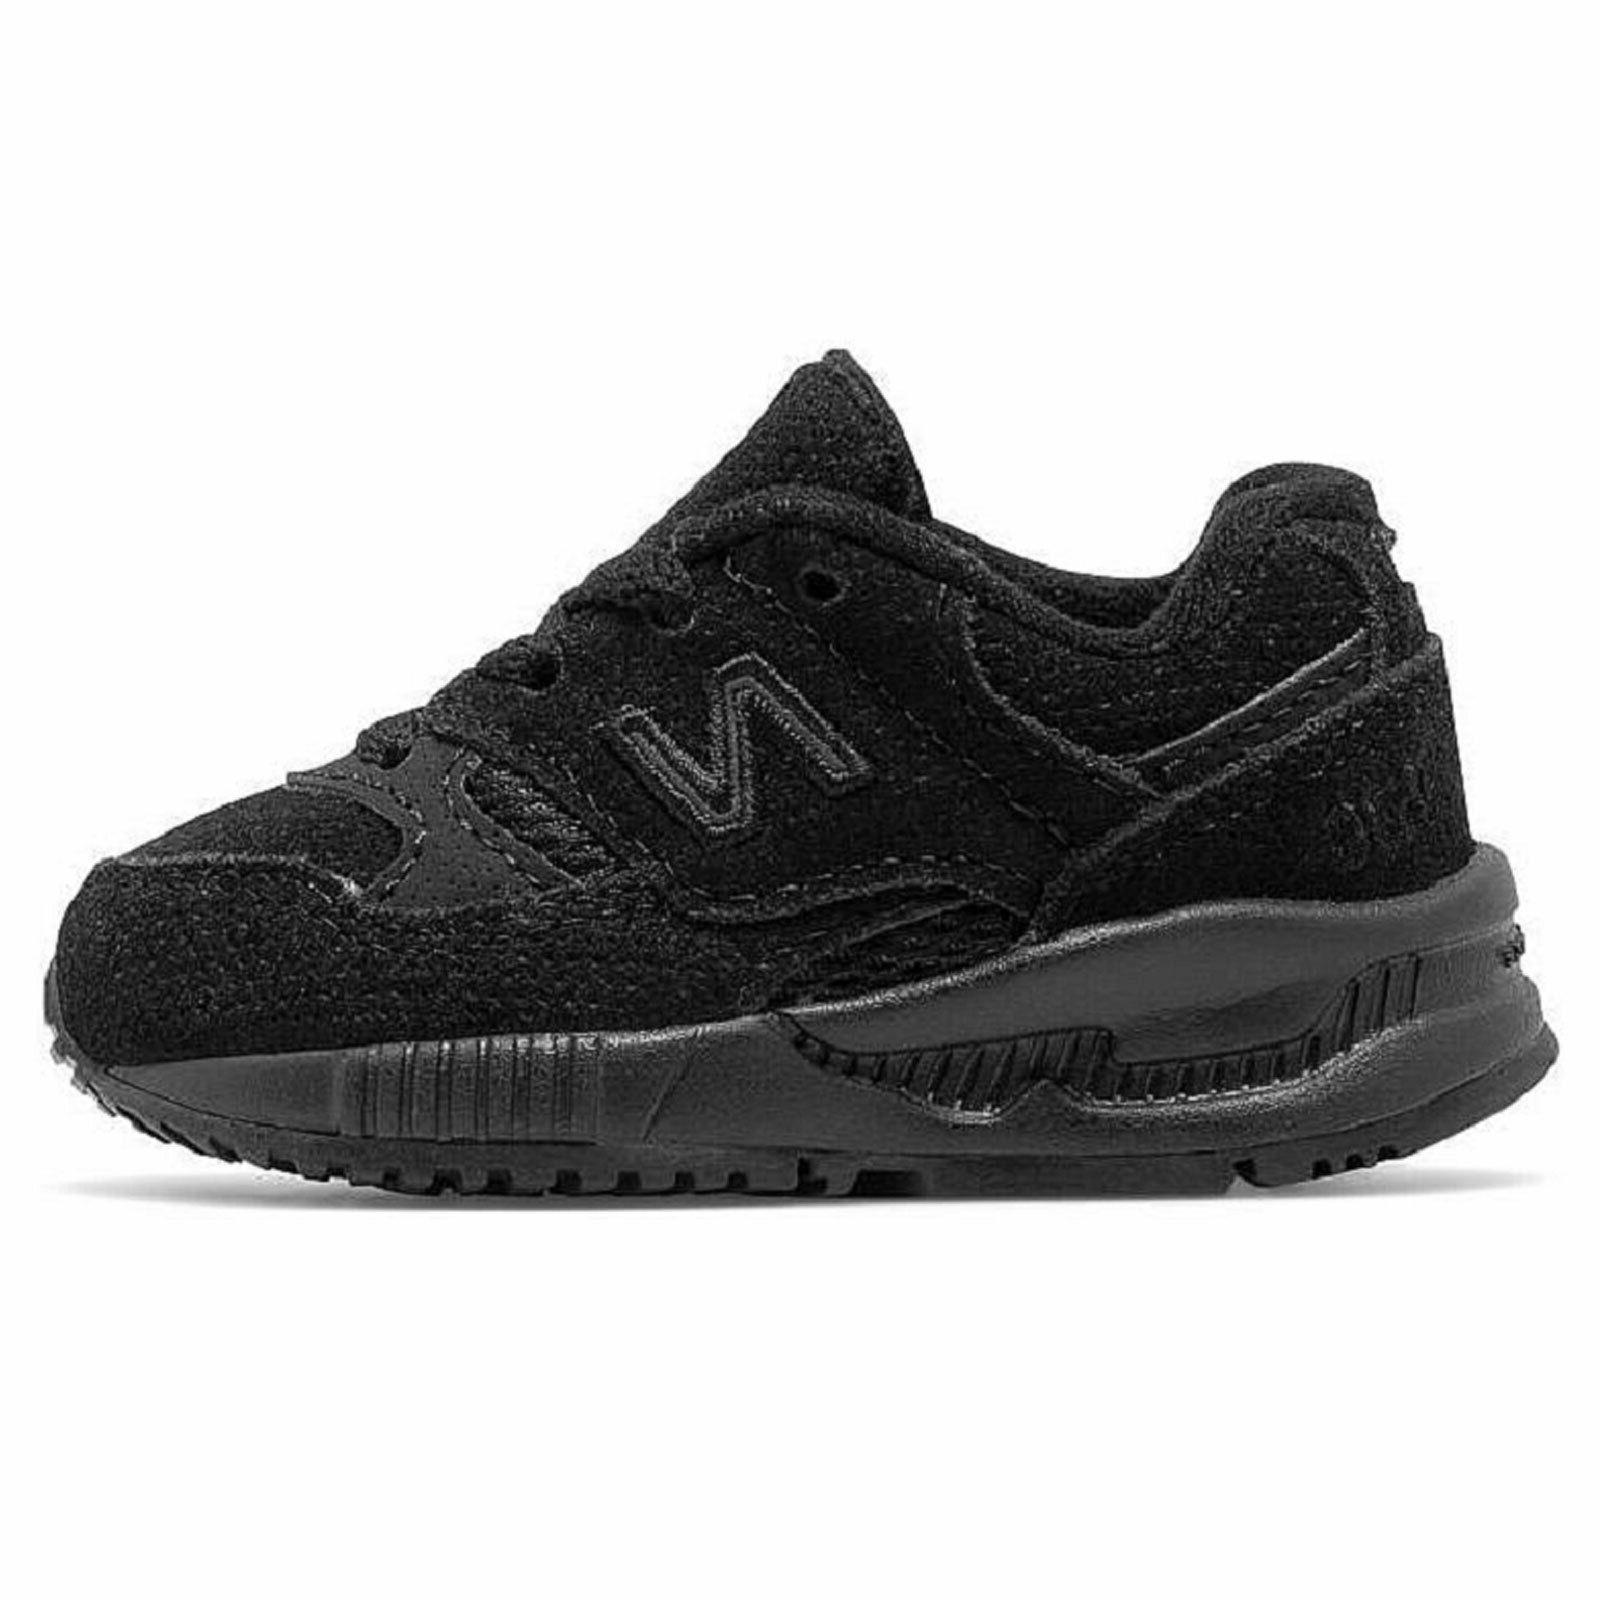 New Balance 530 Baby Children Kids Sneaker Shoes Trainers bl